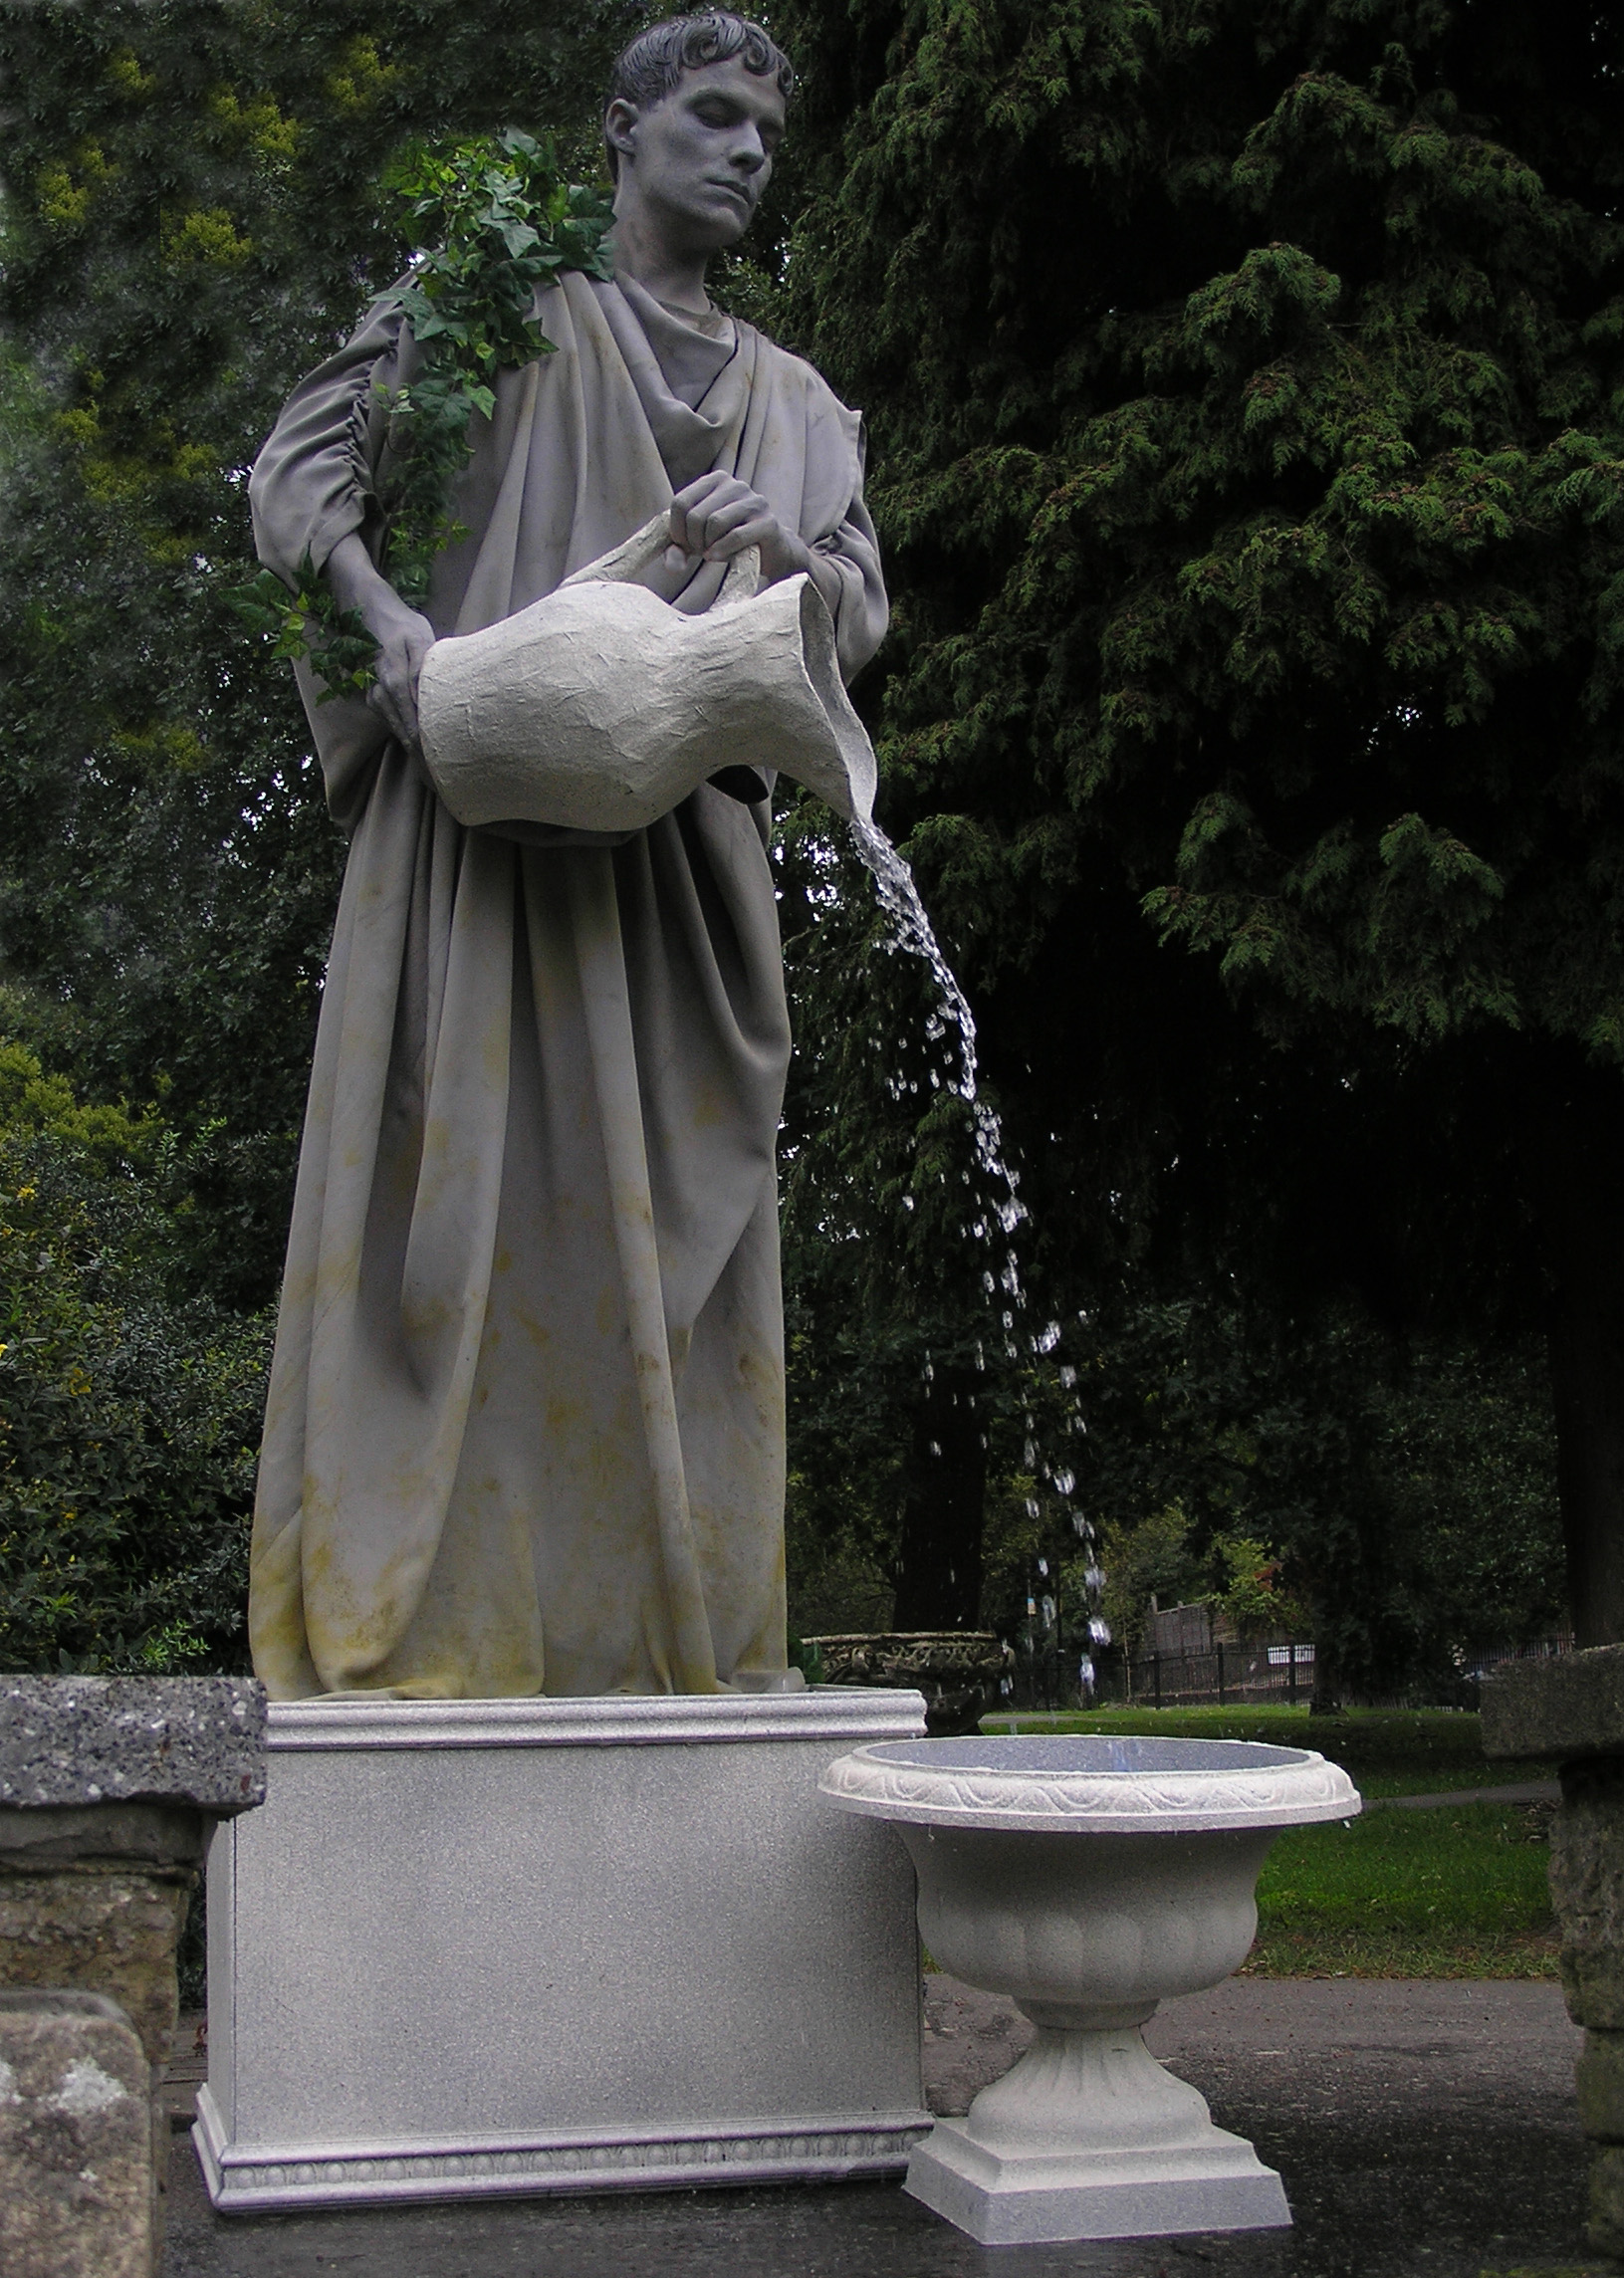 Water fountains with statues - Aquarius The Water Statue